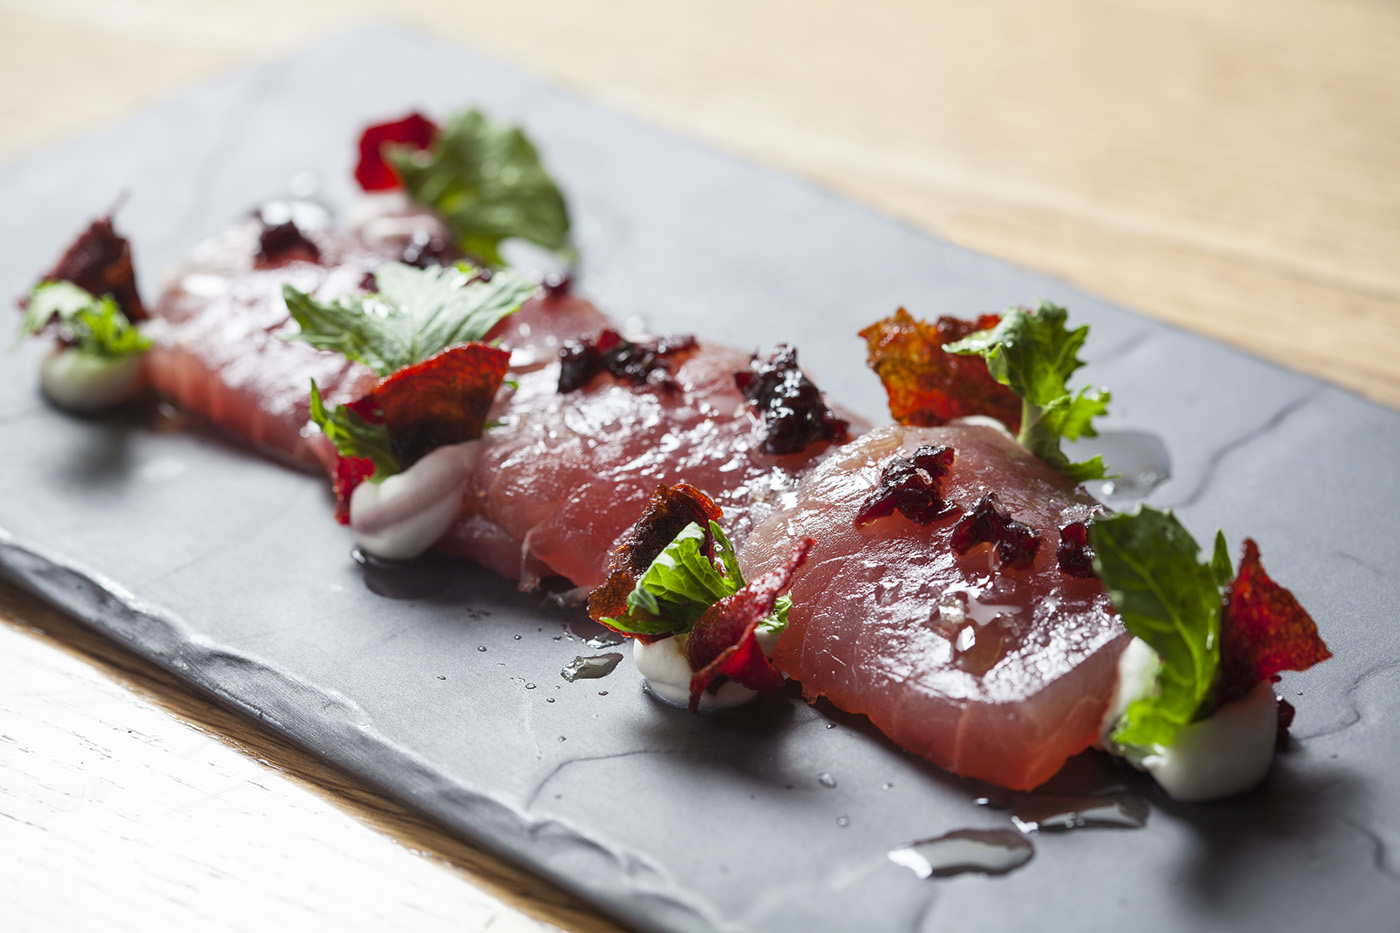 I've heard that Bluefin Tuna is overfished, why does King's Seafood Company serve it on their menu?